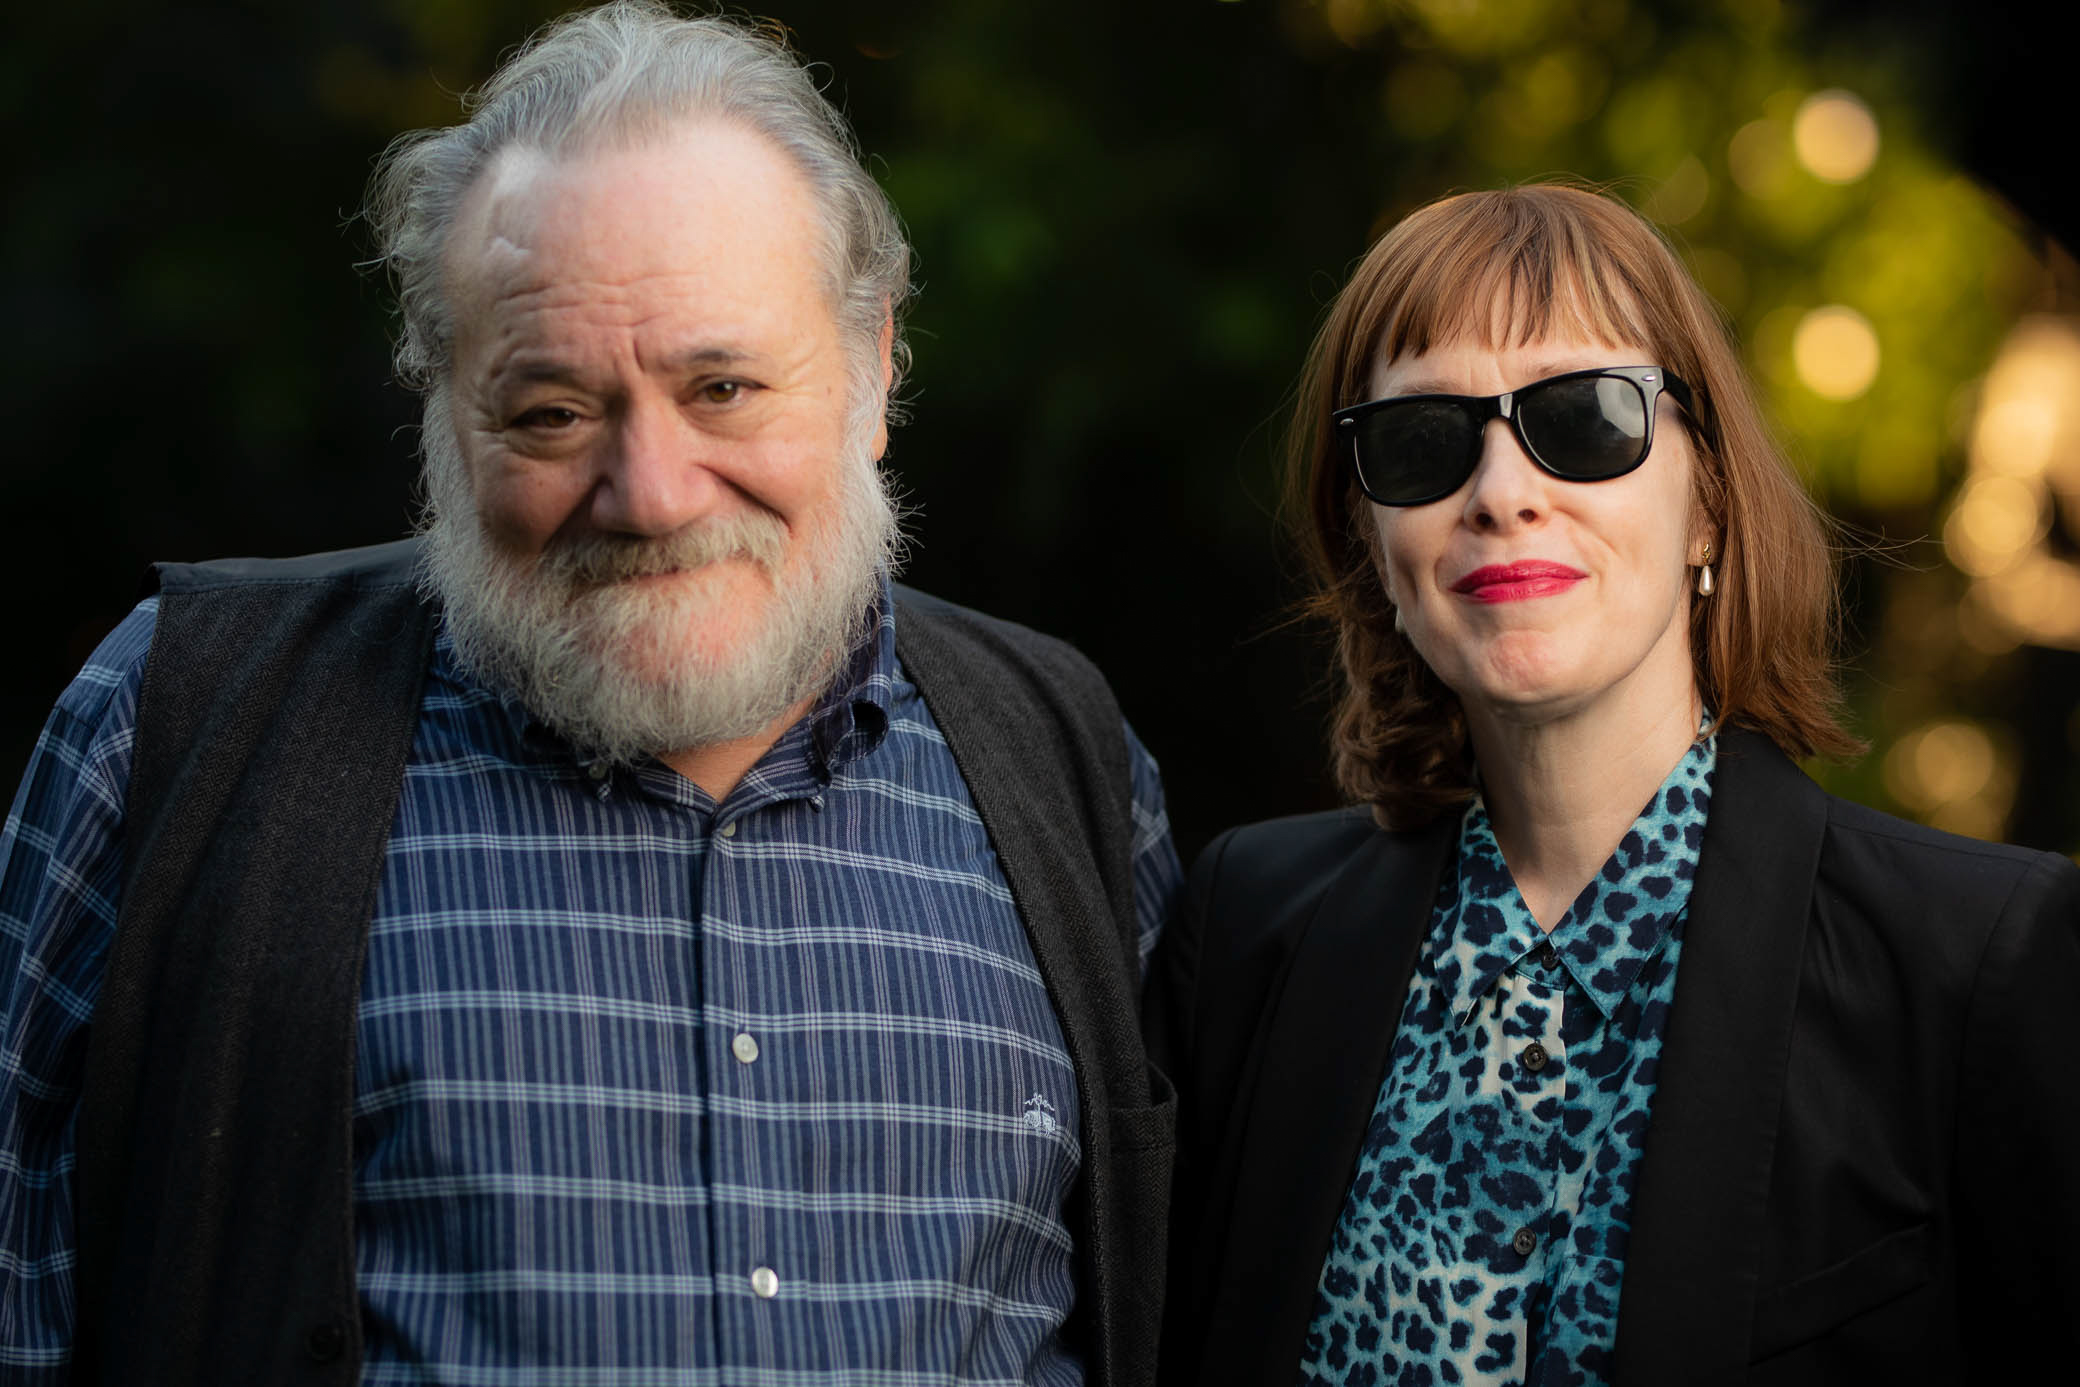 Louis Black and Suzanne Vega